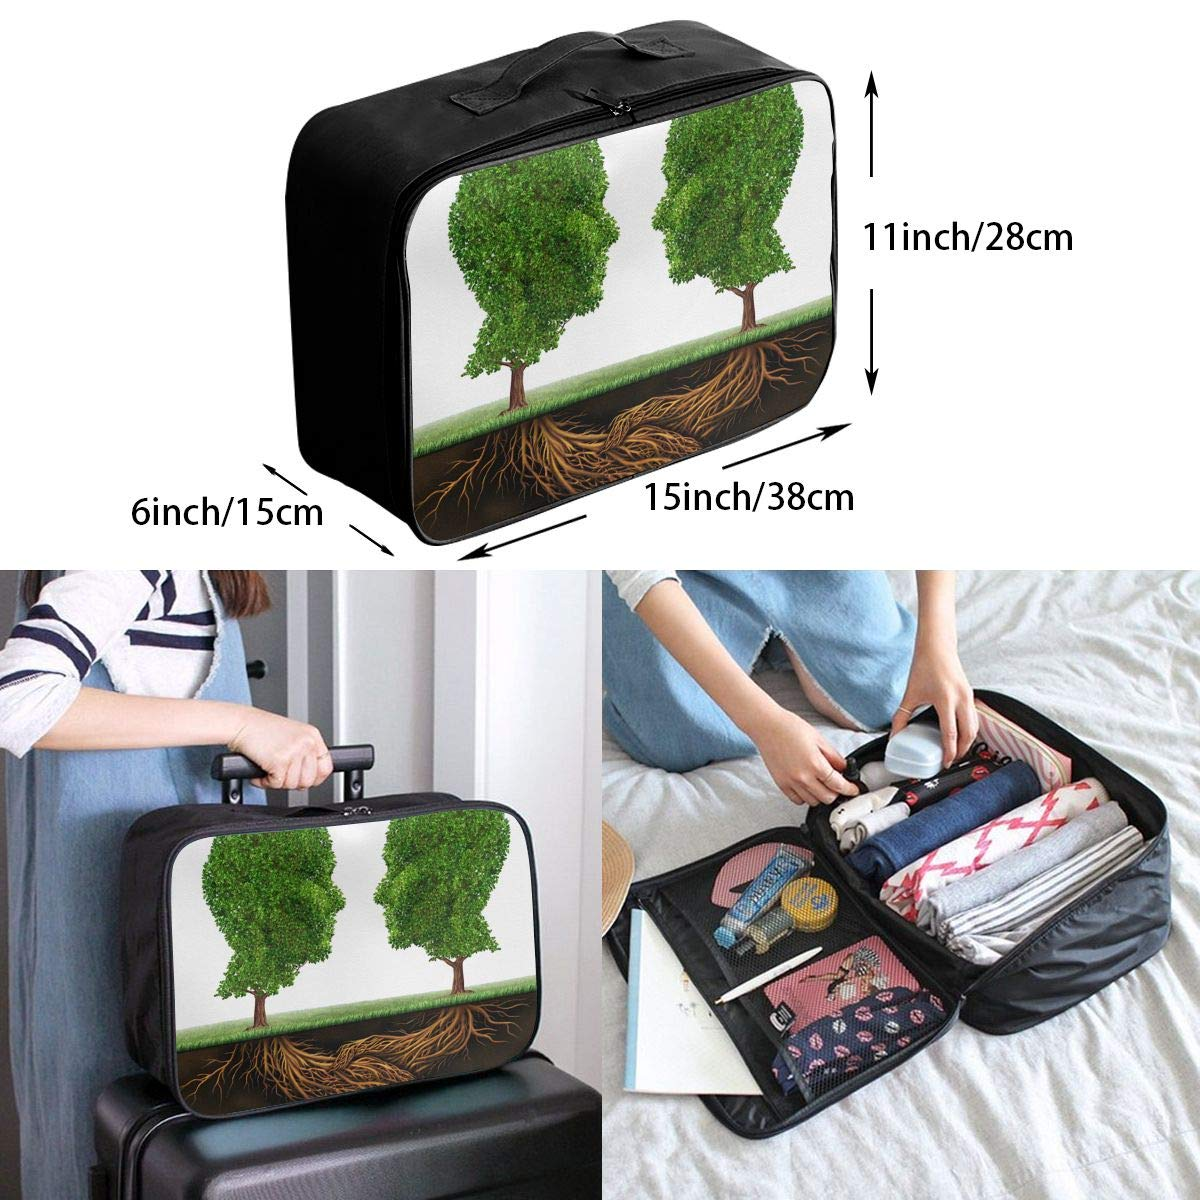 Travel Luggage Duffle Bag Lightweight Portable Handbag Green Tree Brain Pattern Large Capacity Waterproof Foldable Storage Tote